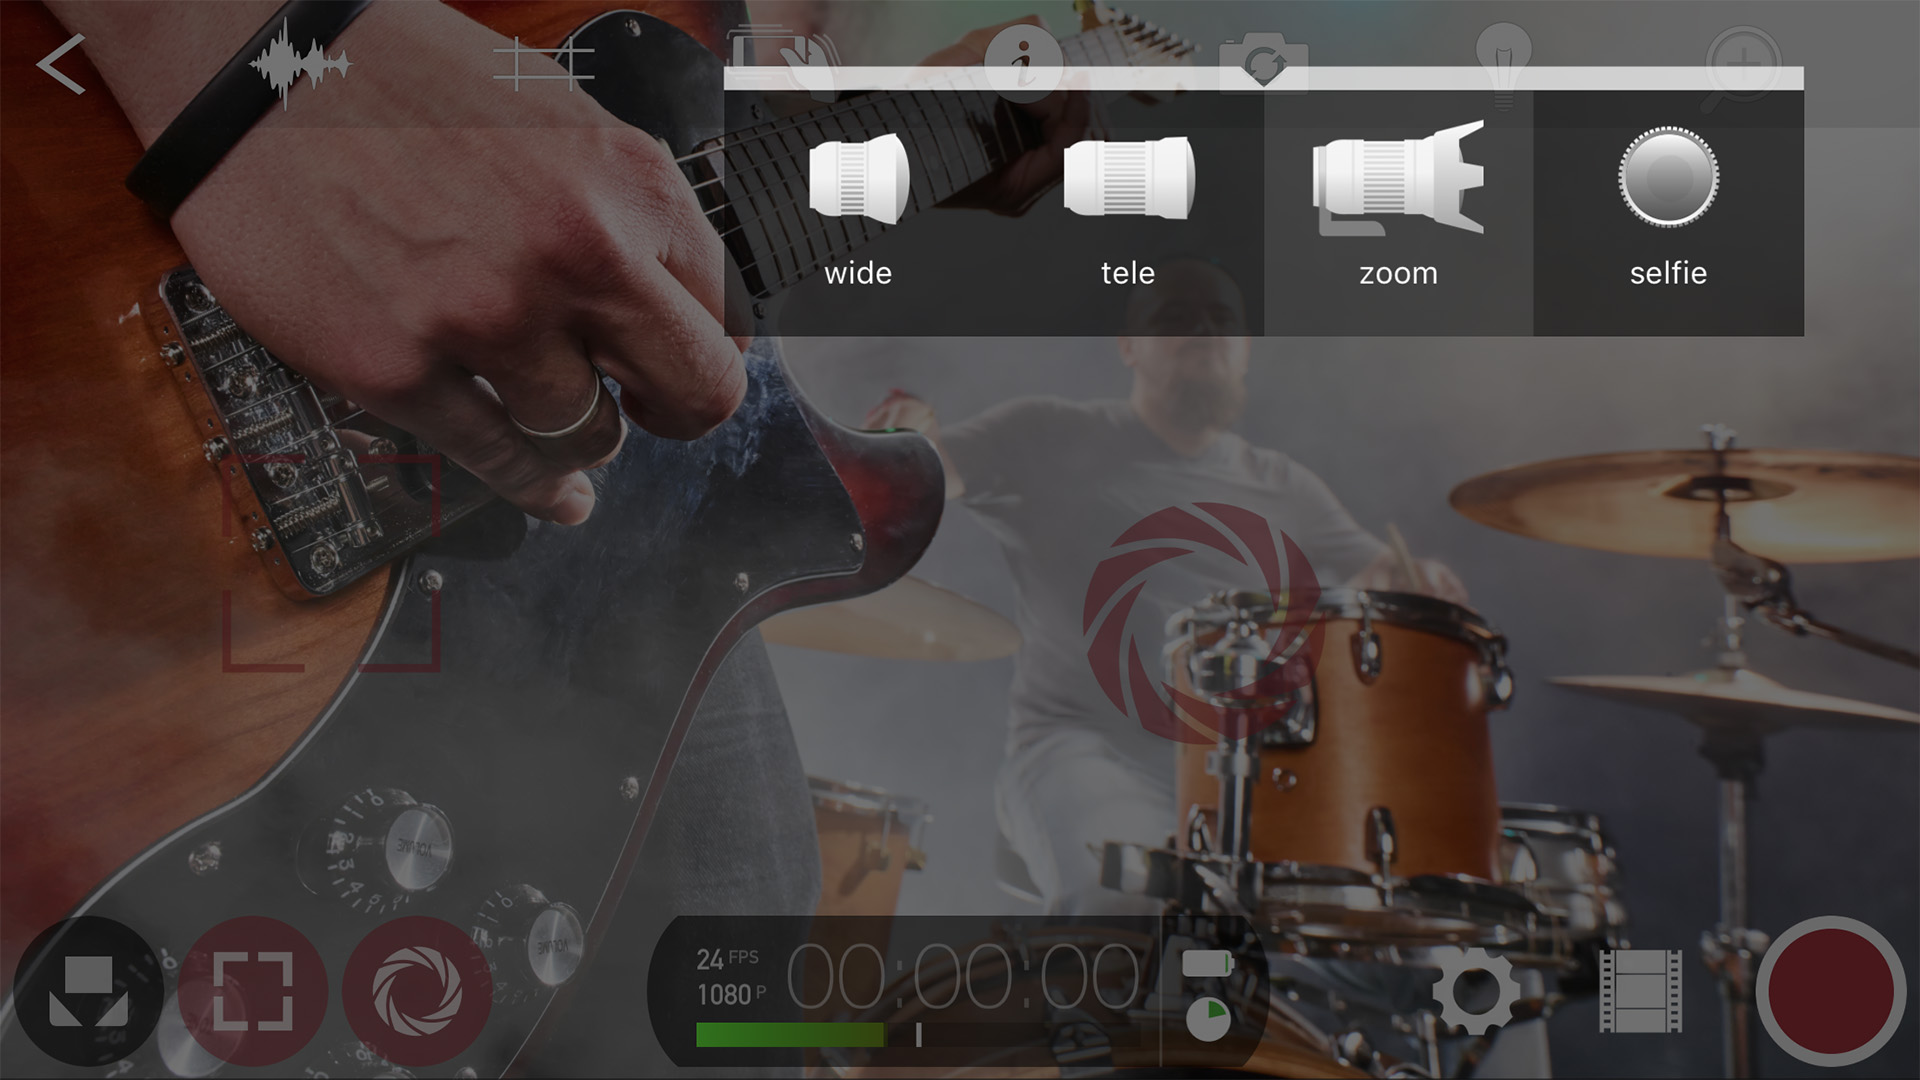 Best iPhone Video Camera App for iPhone and iPad